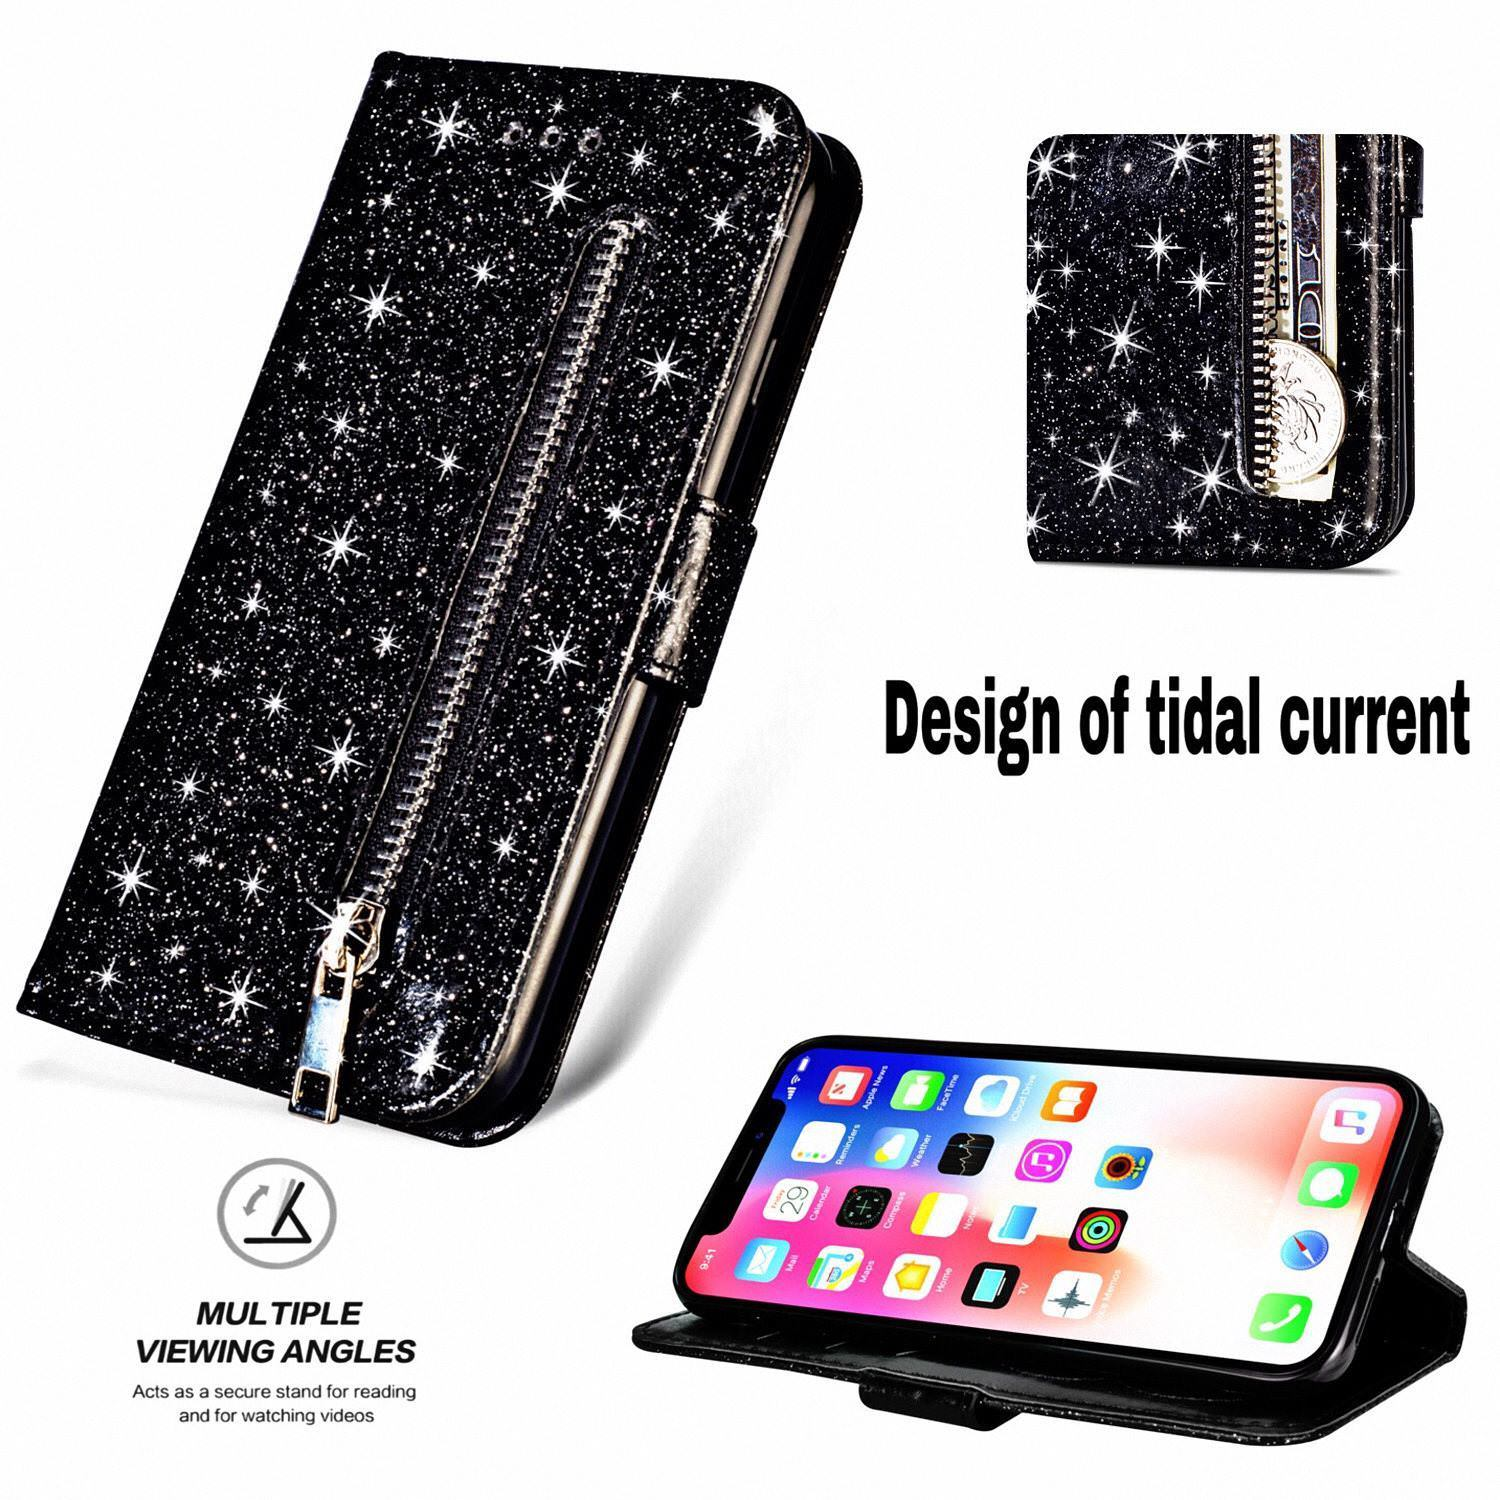 Glitter Bling Purse Wallet Card Holder Case For iPhone 6 6s Plus 7 8 Soft PU Leather Phone Cover For iPhone 11 Pro Max XR XS Case With Zip Pocket & Strap